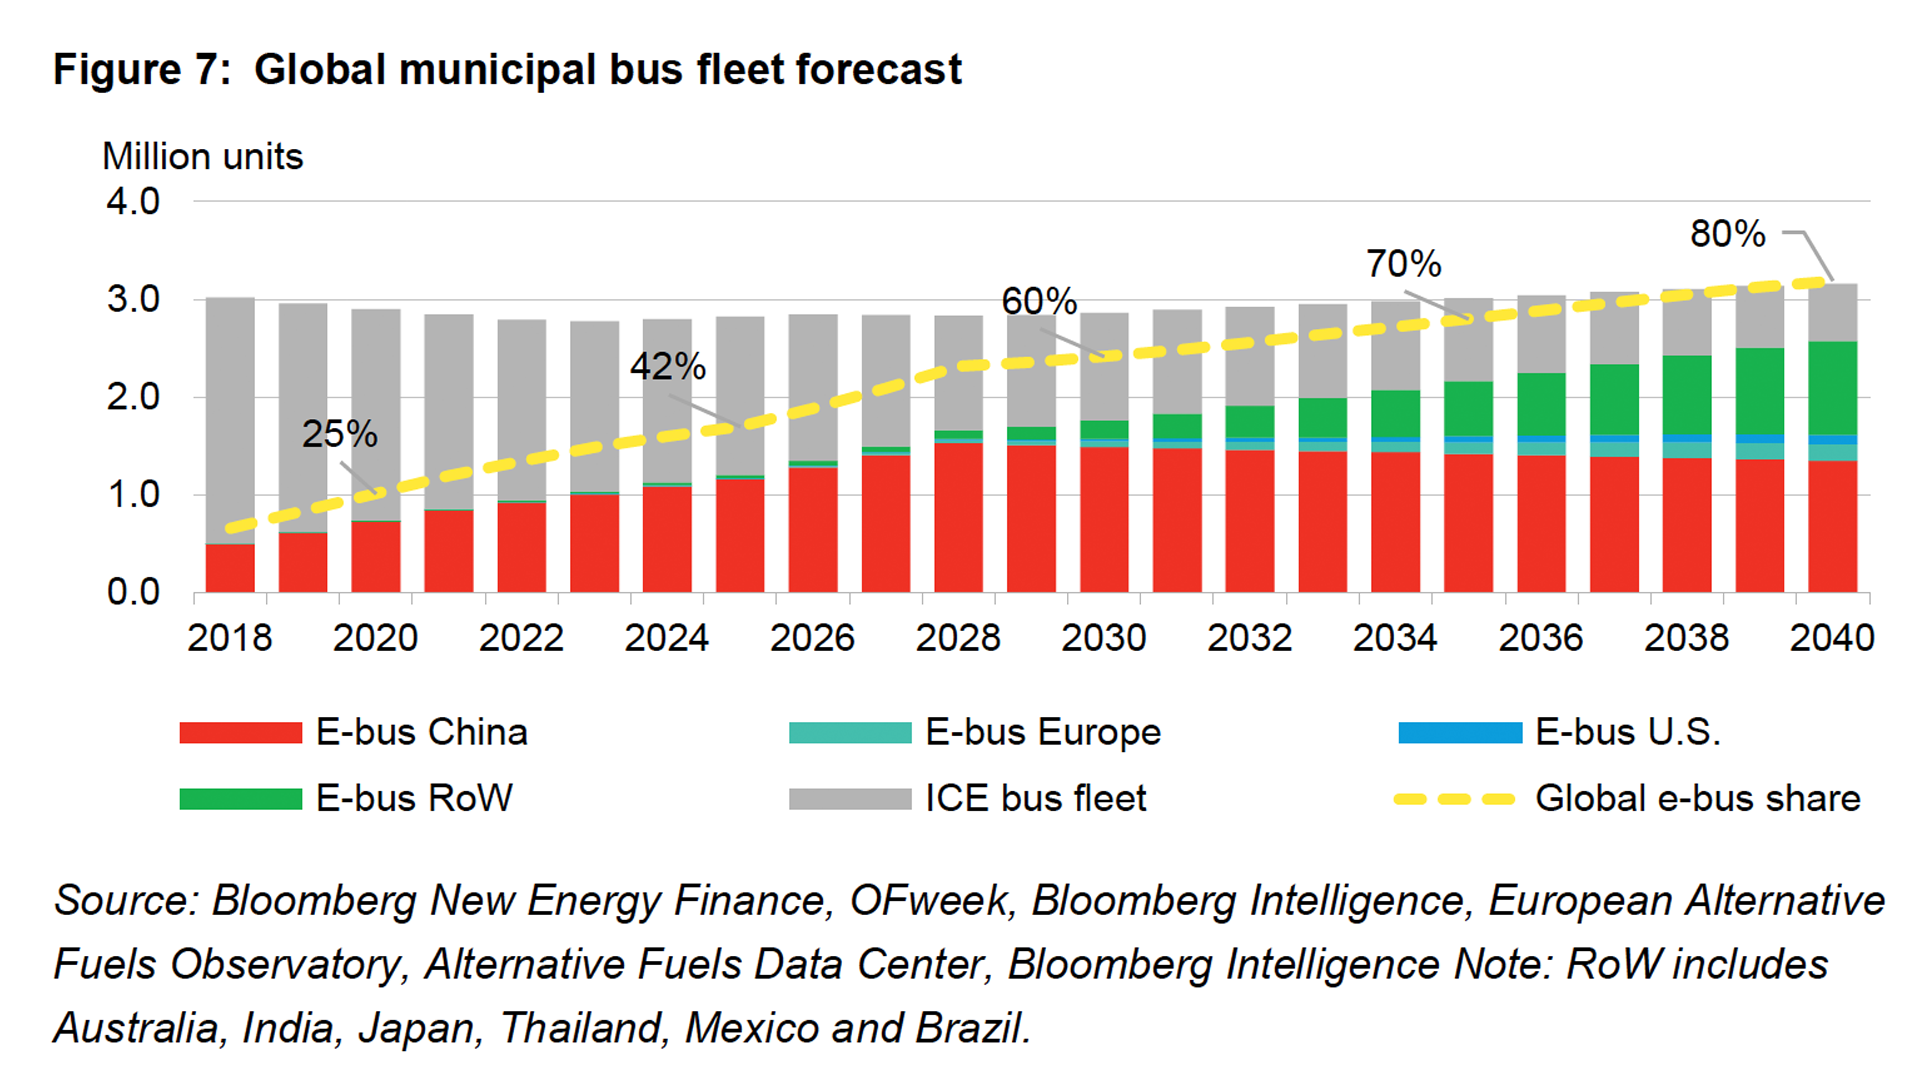 Projection of electric bus deployment growth